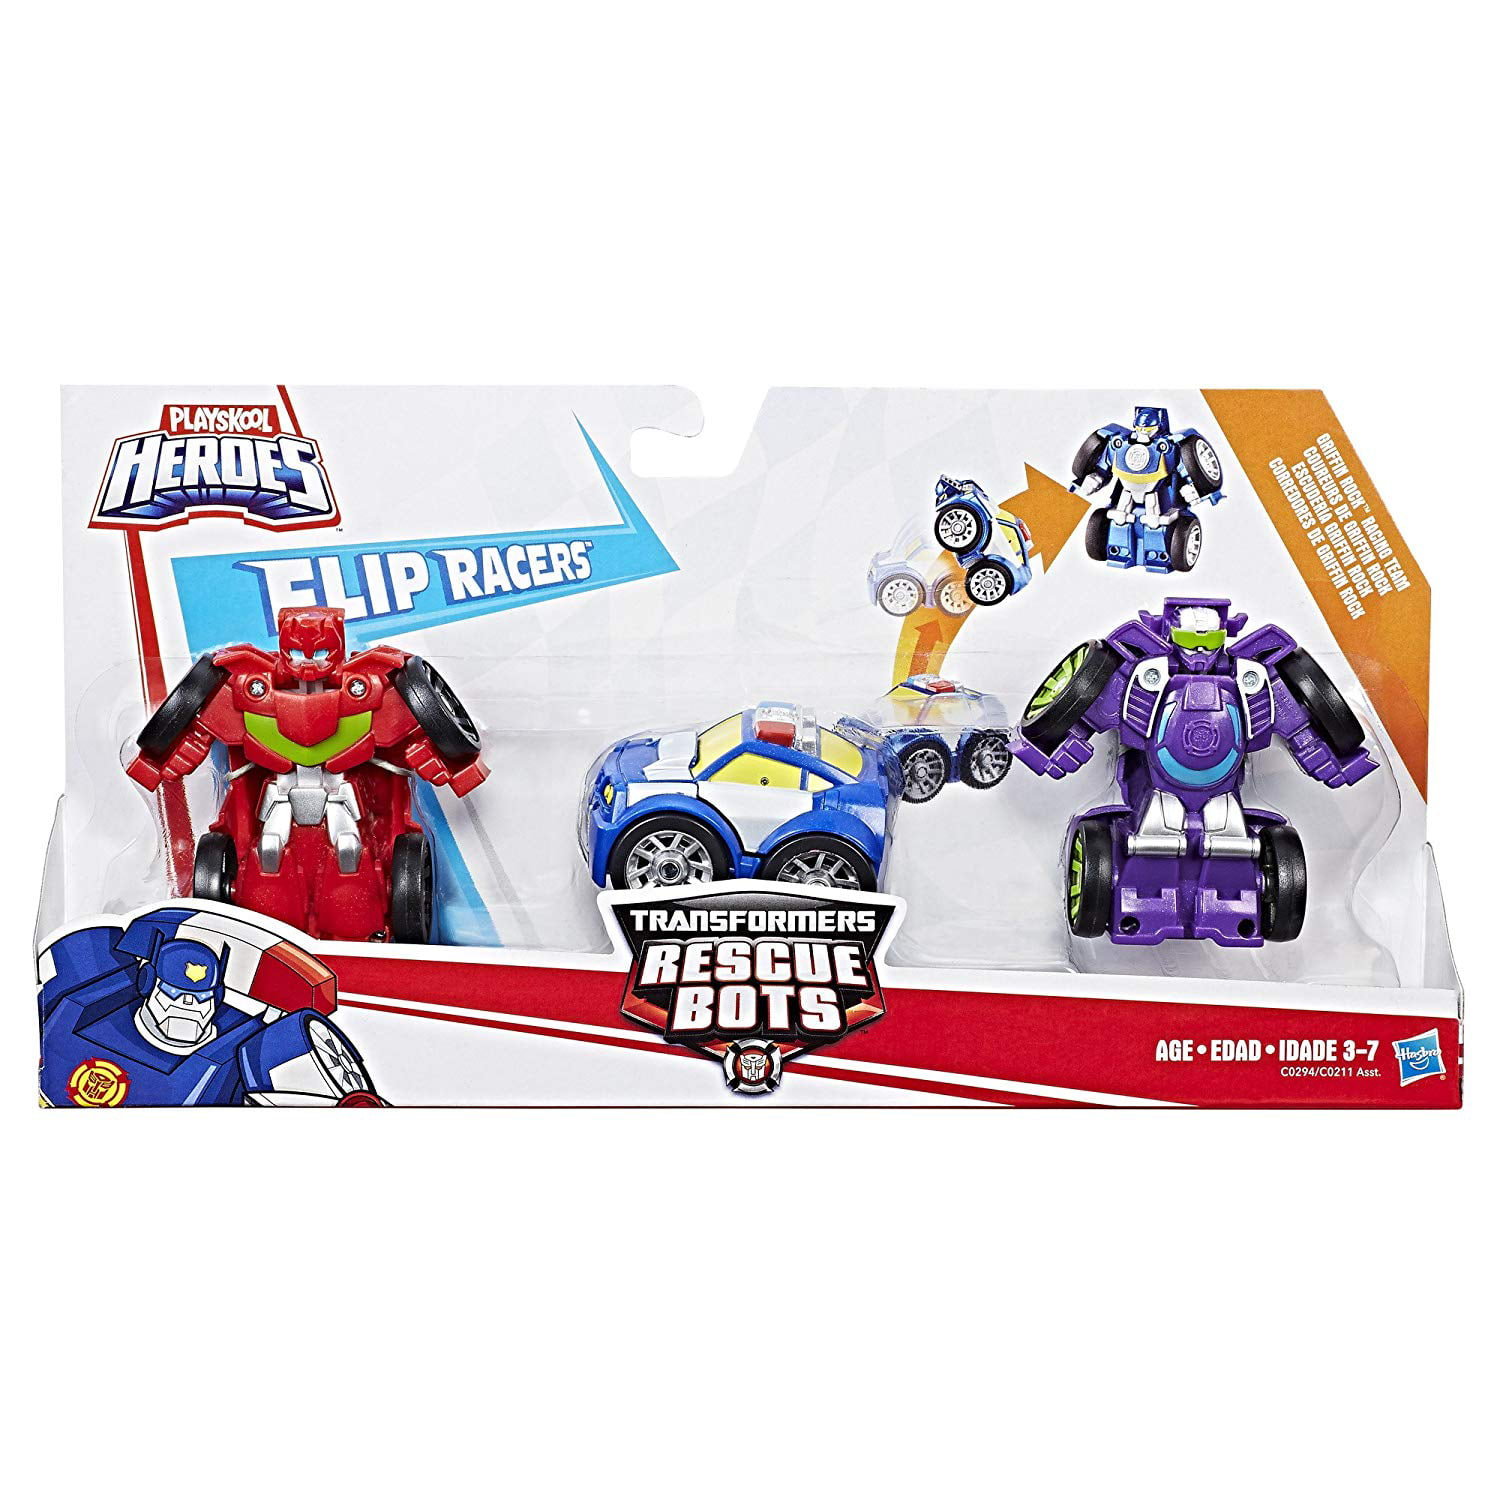 Playskool Heroes Flip Racers Transformers Rescue Bots Griffin Rock Racing Team by